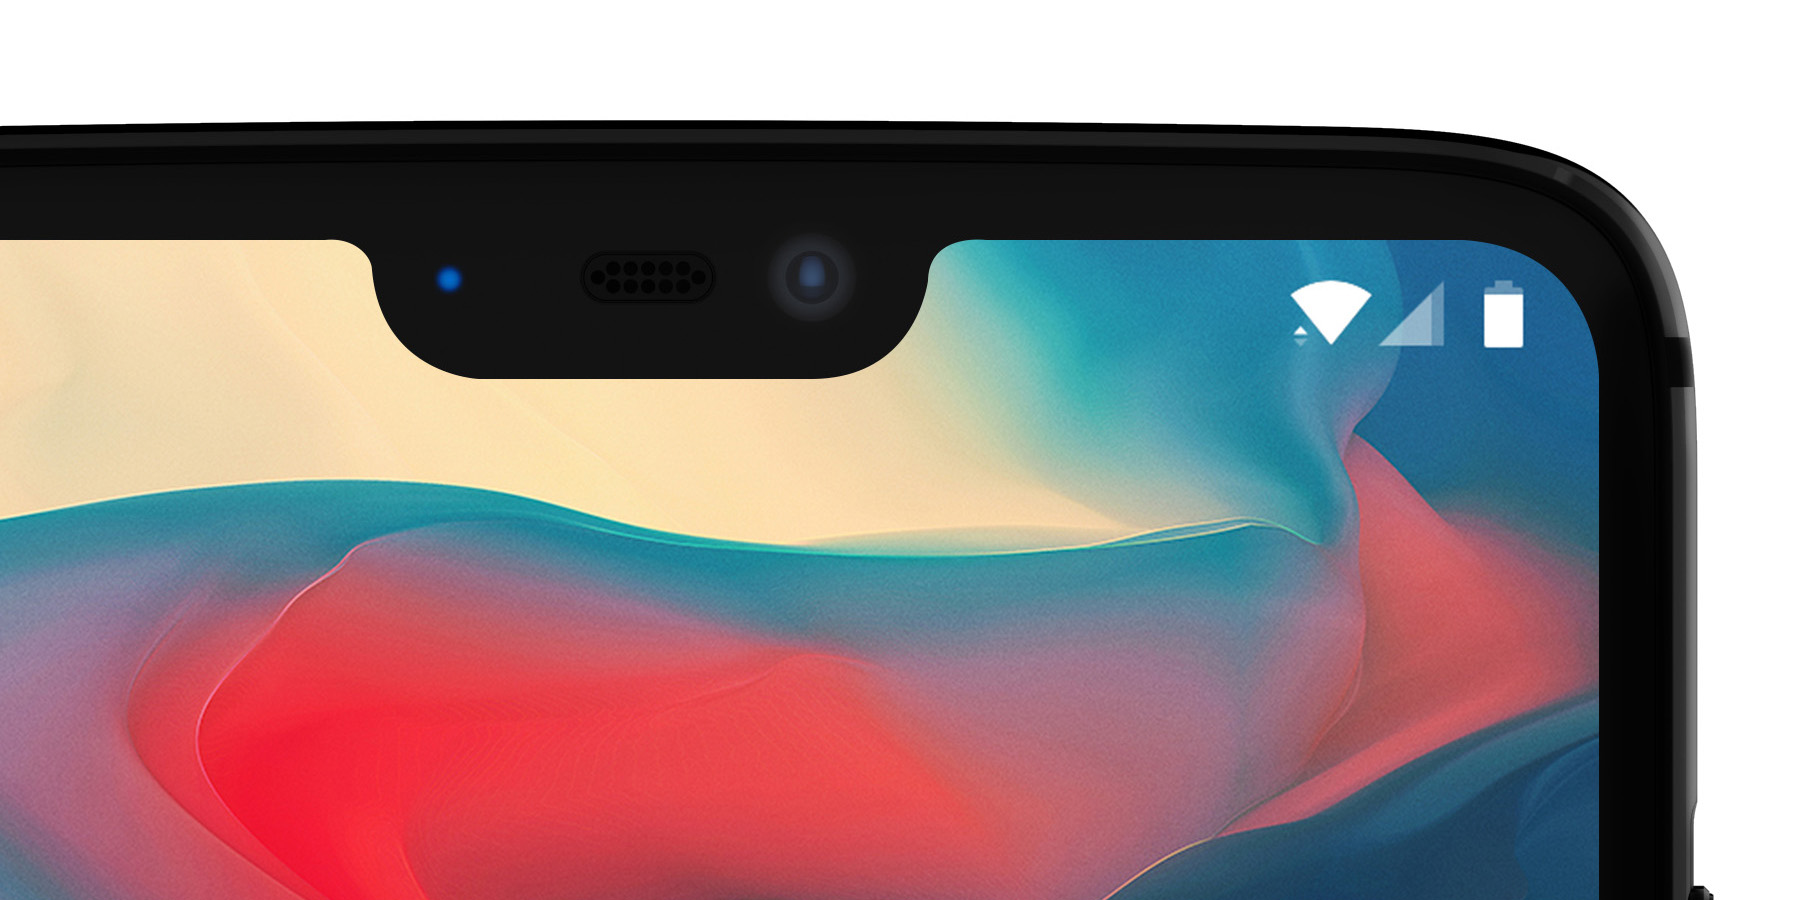 OnePlus 6 confirmed to have a notch, Carl Pei explains why Android phones still have 'chins'